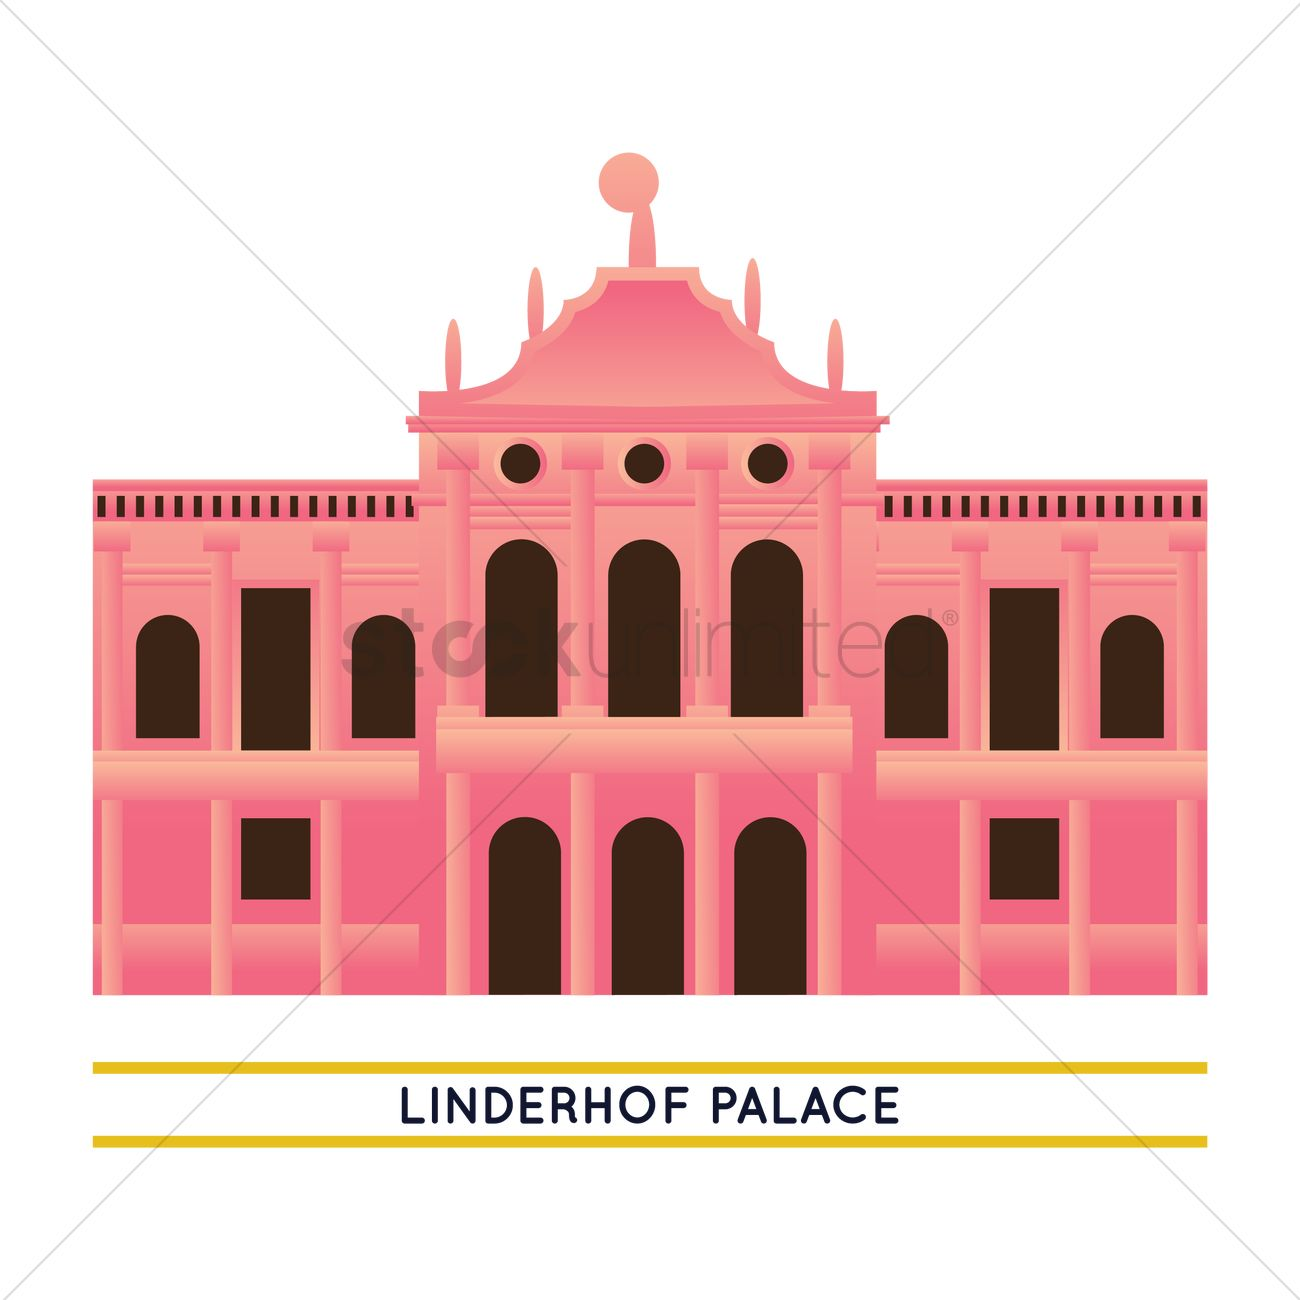 Linderhof palace Vector Image.